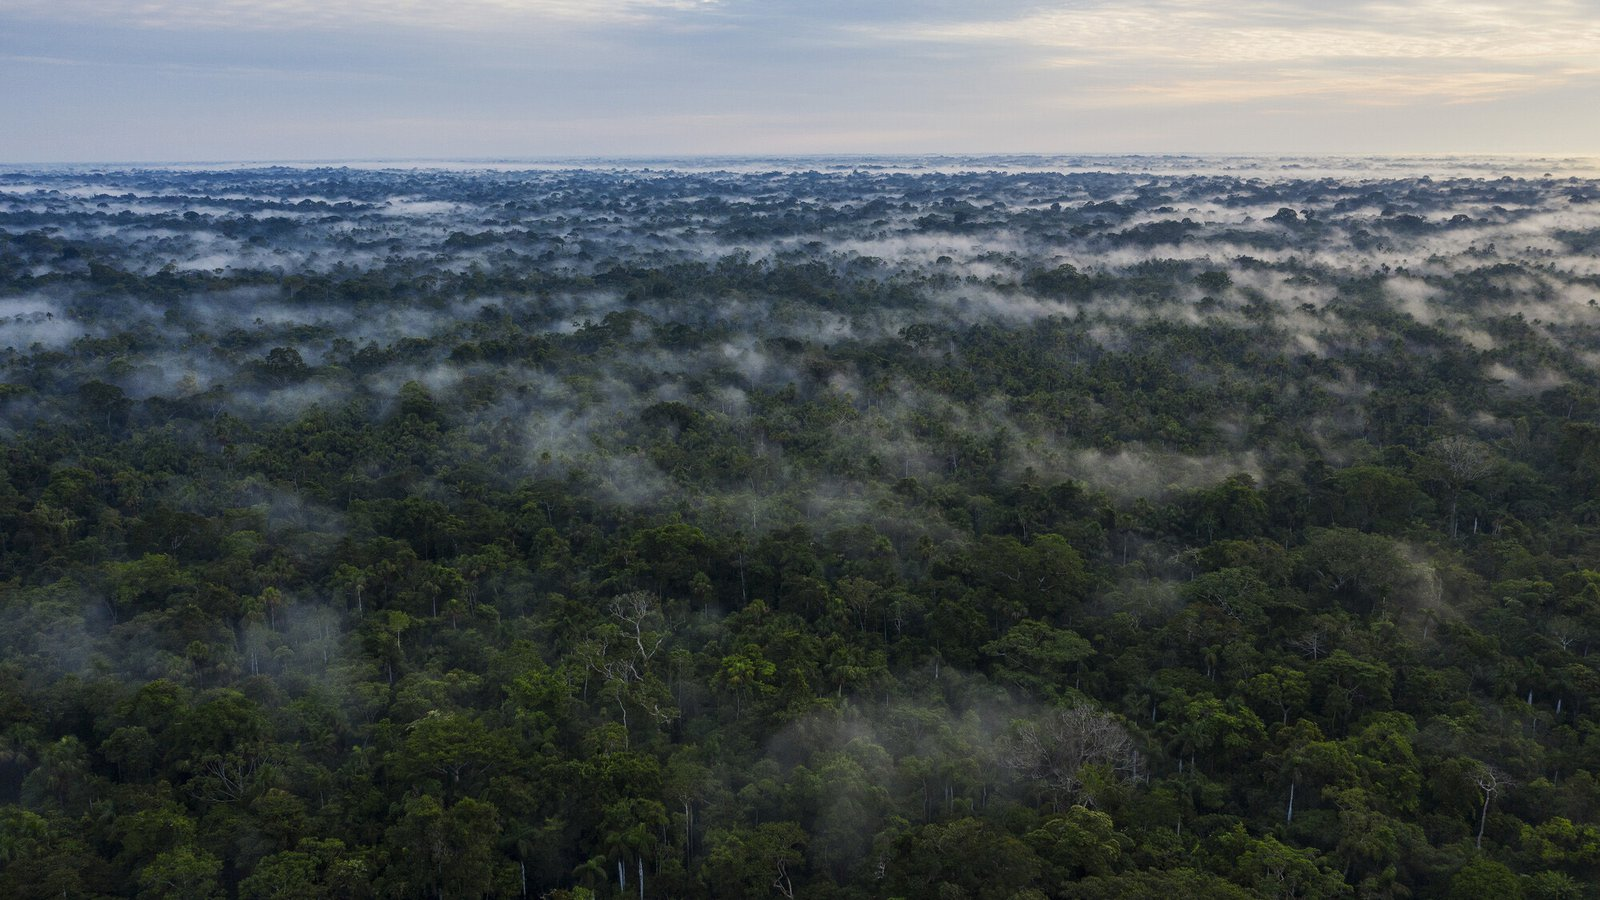 Photo showing intact forest and biodiversity in Acre state, Brazil, November 2020.  Lalo de Almeida/Panos/Global Witness